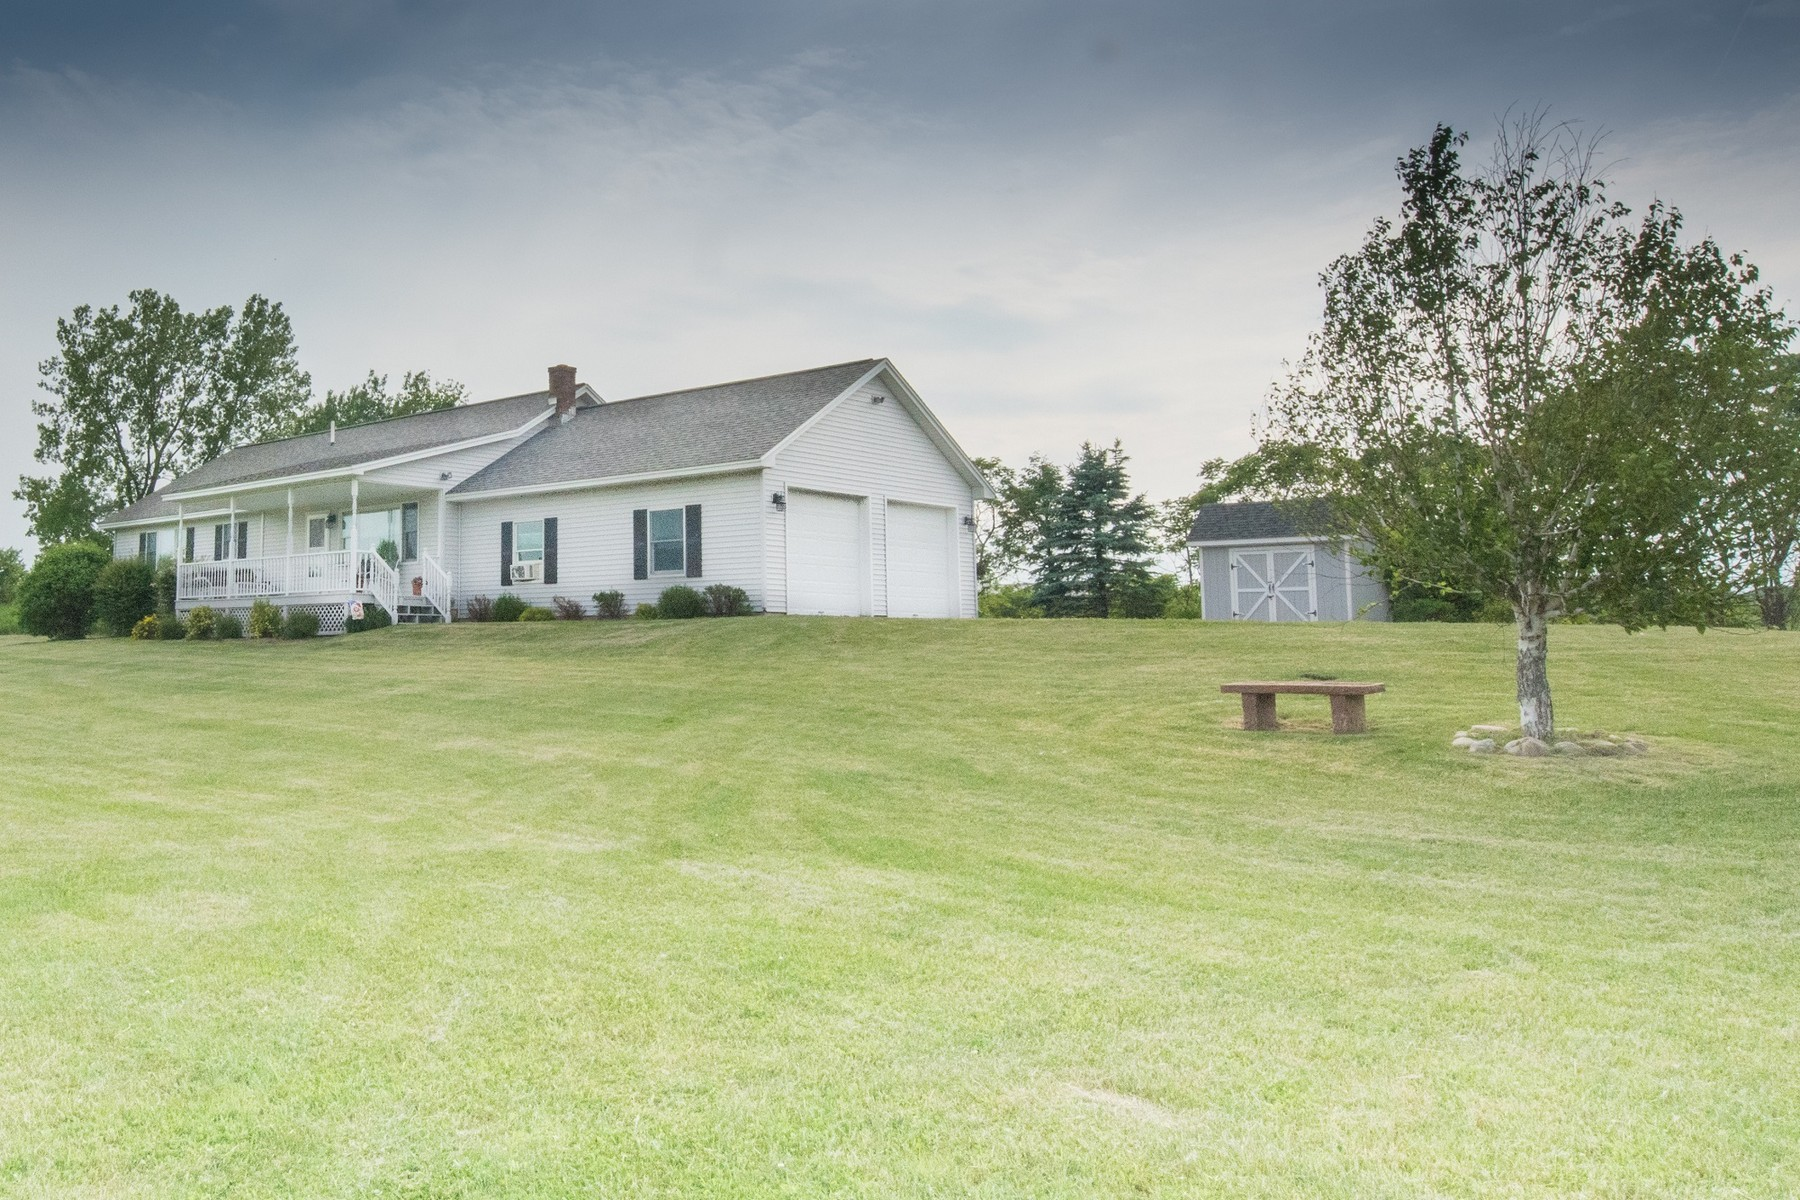 Single Family Home for Sale at Fly-In Home in Beautiful Washington County 5290 State Route 40 Argyle, 12809 United States